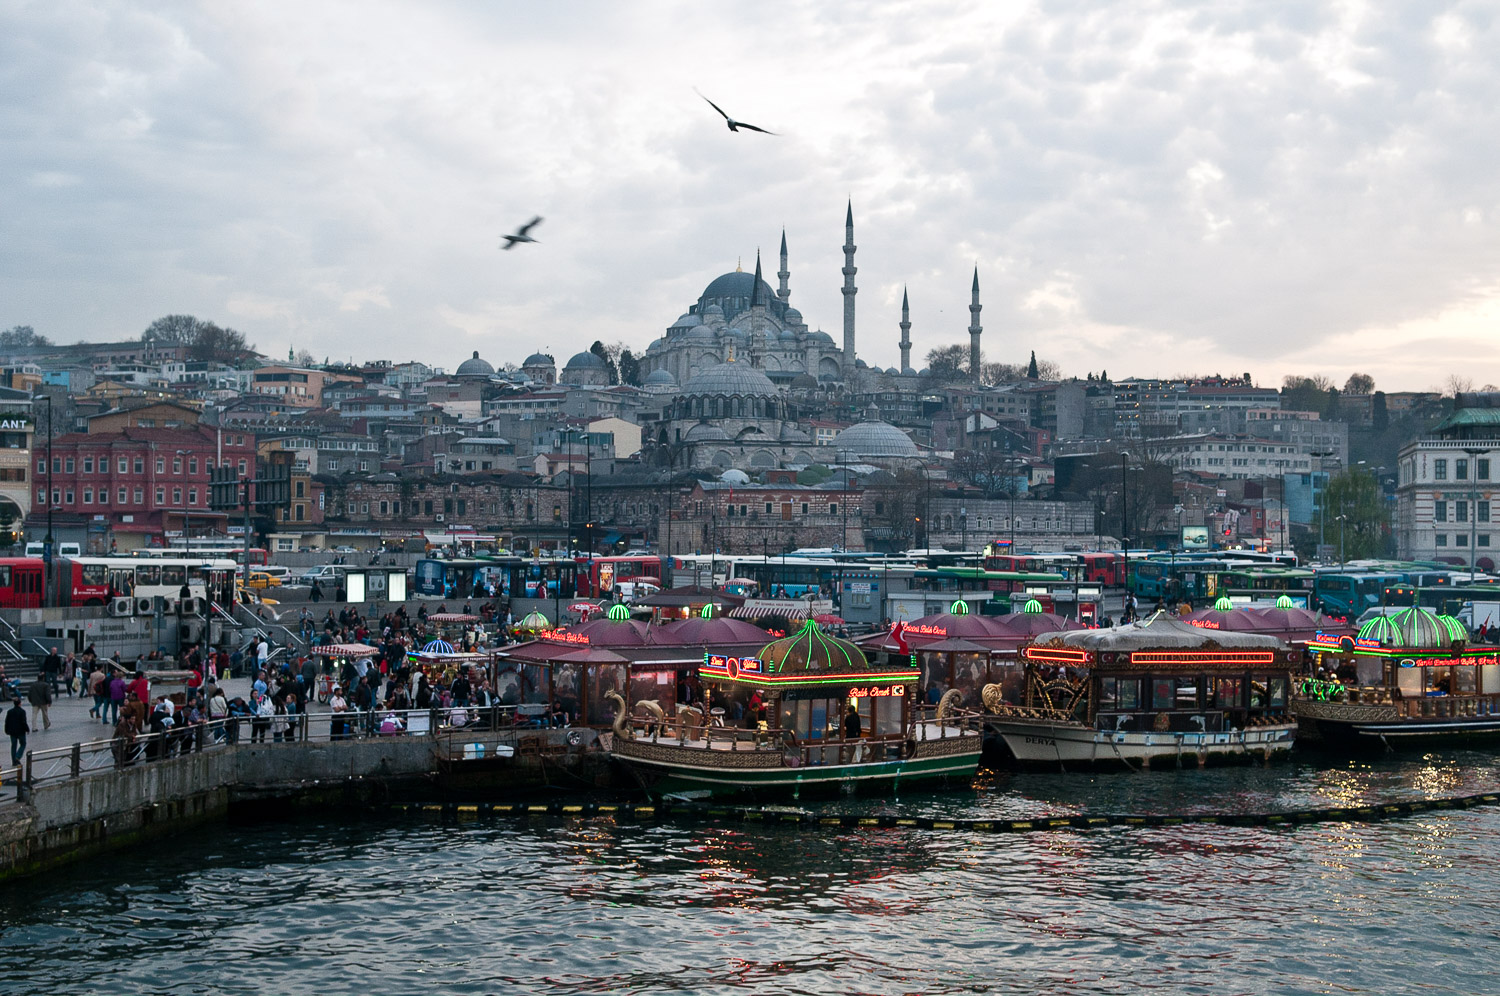 Harbour side view of the Old City of Istanbul, Turkey, on the 5 April 2012. The mosque on the hill is Suleymaniye Mosque.